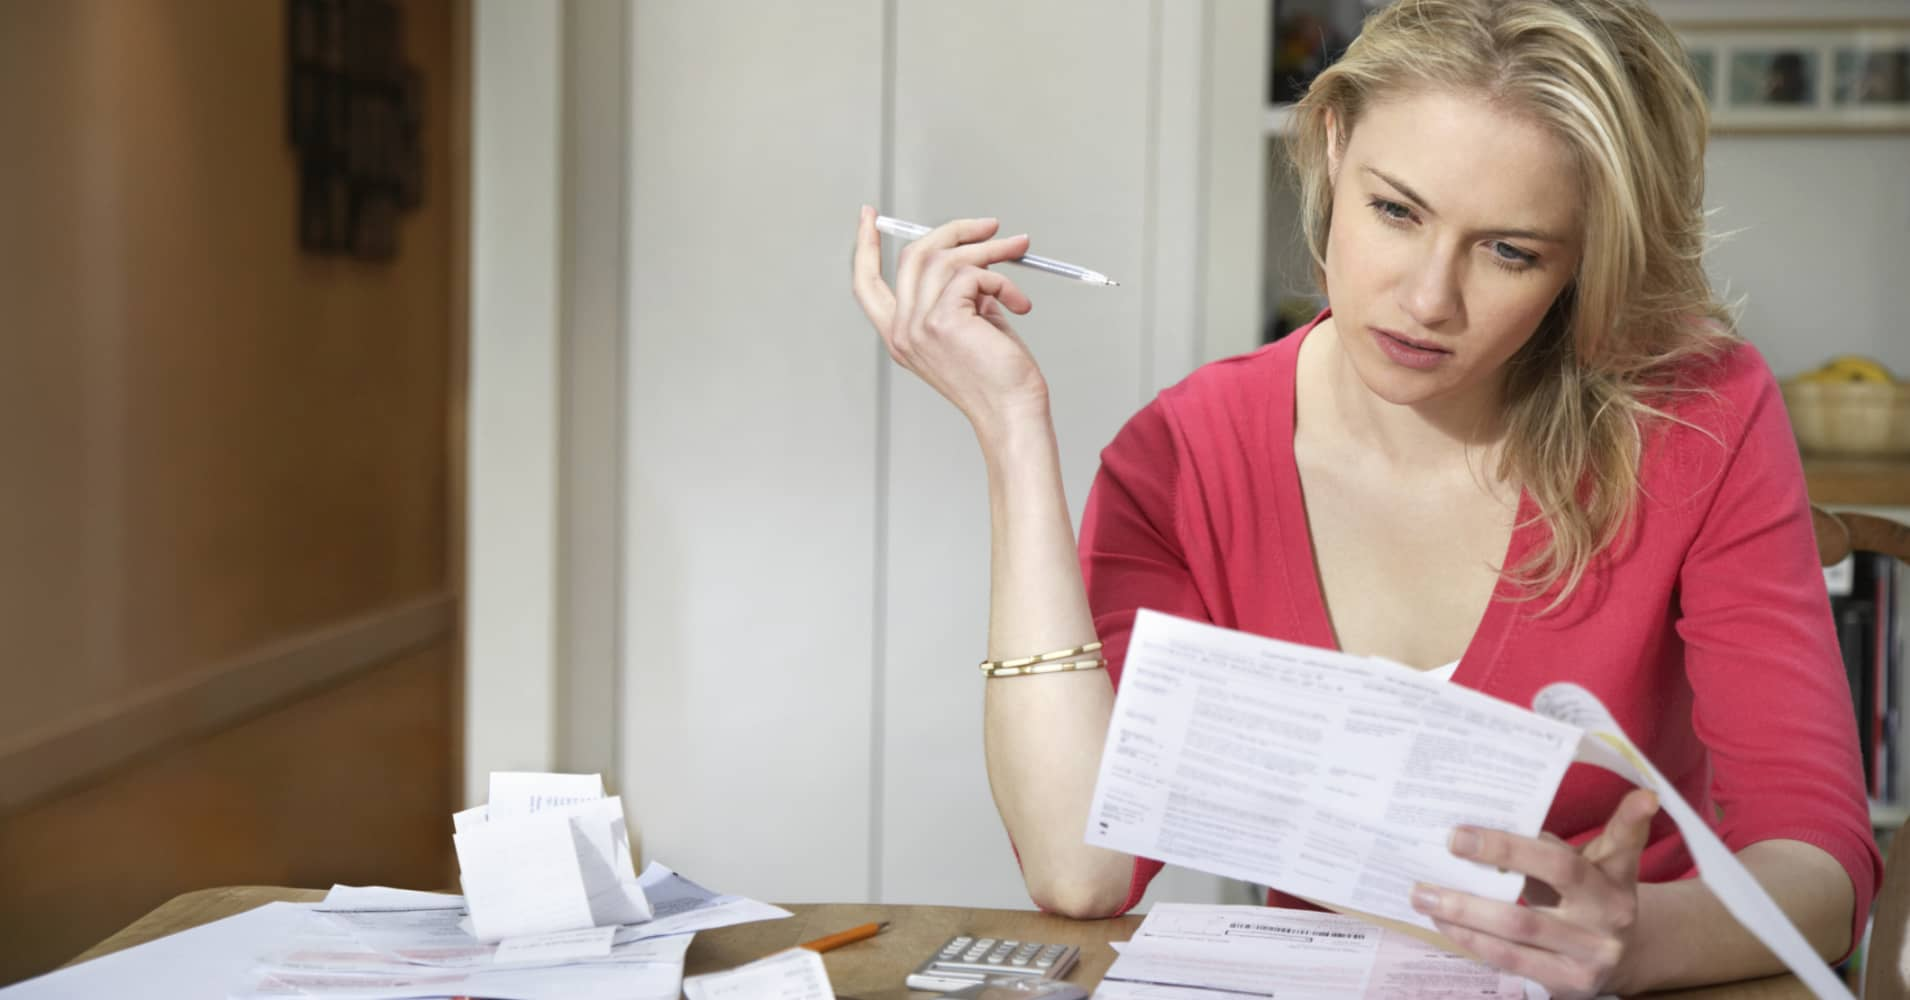 Woman reviewing paper work